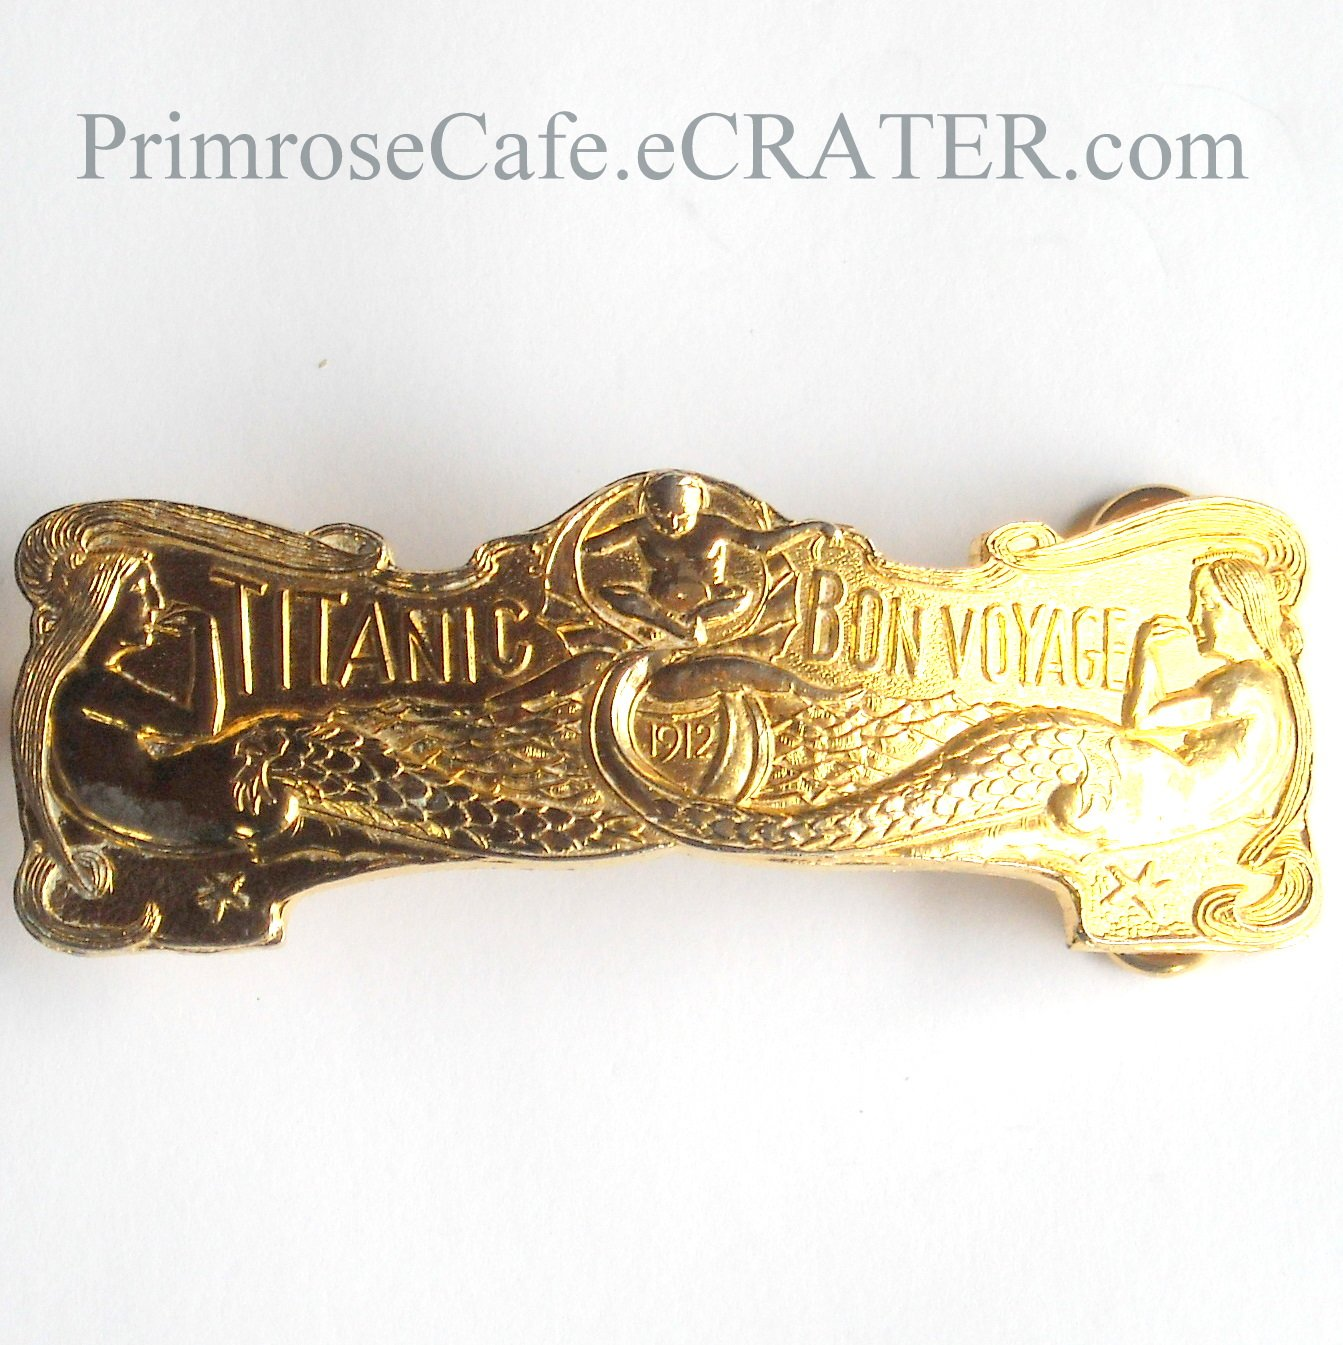 Vintage Titanic Bon Voyage 1912 Mermaids French Brass Belt Buckle